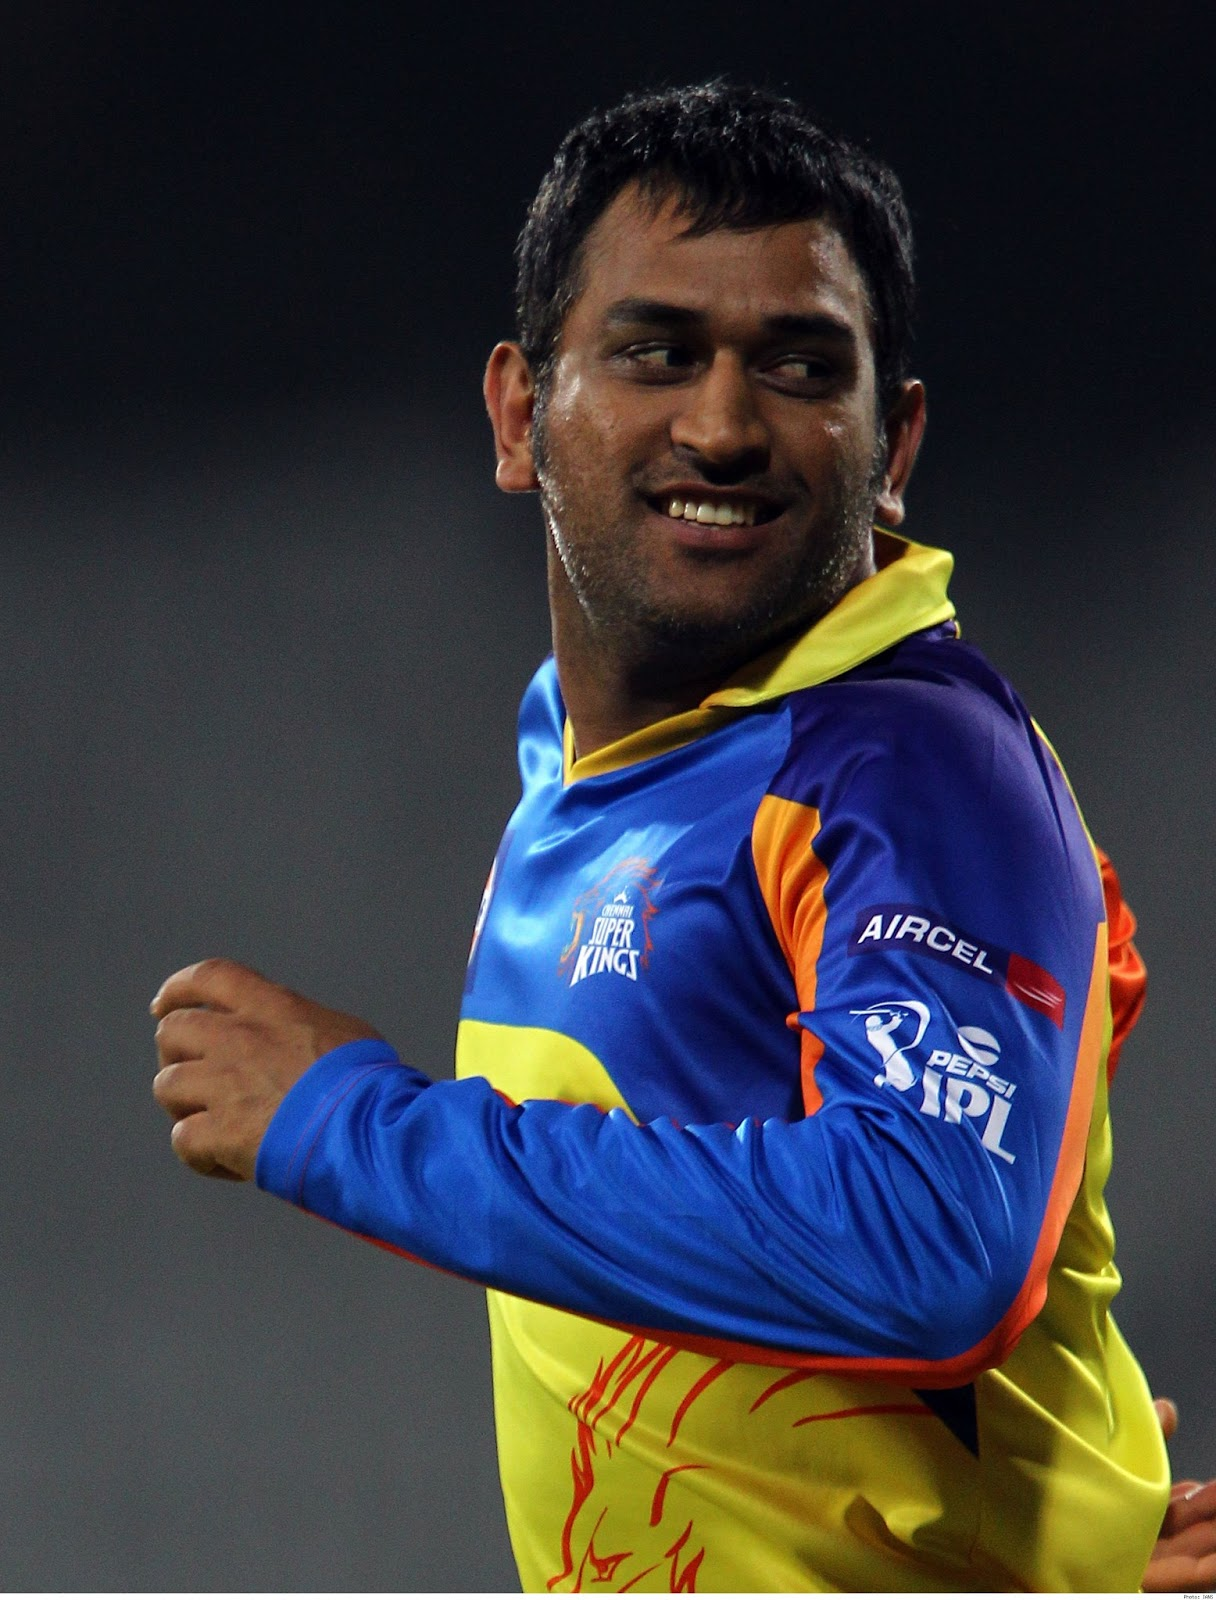 dhoni images in csk download - photo #41